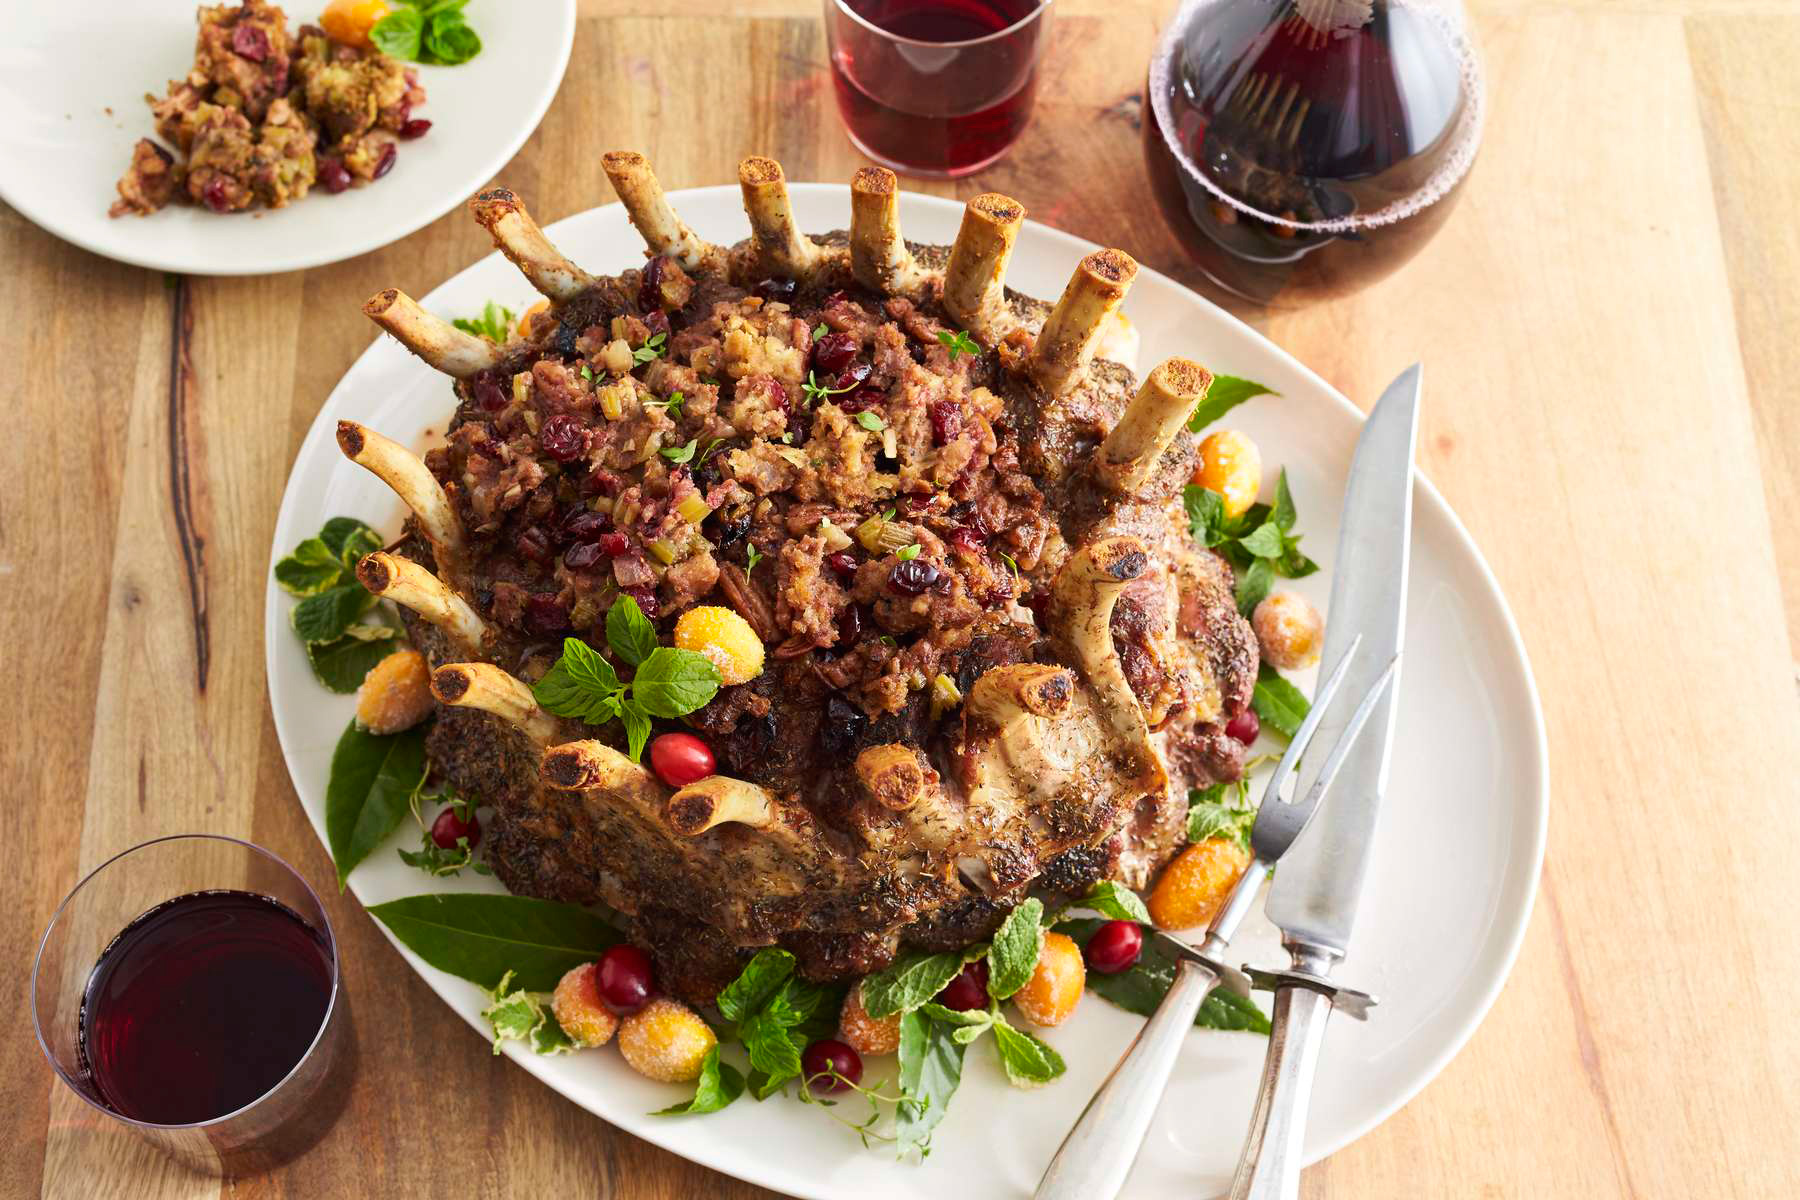 Crown Pork Roast with Cranberry Pecan Stuffing Recipe